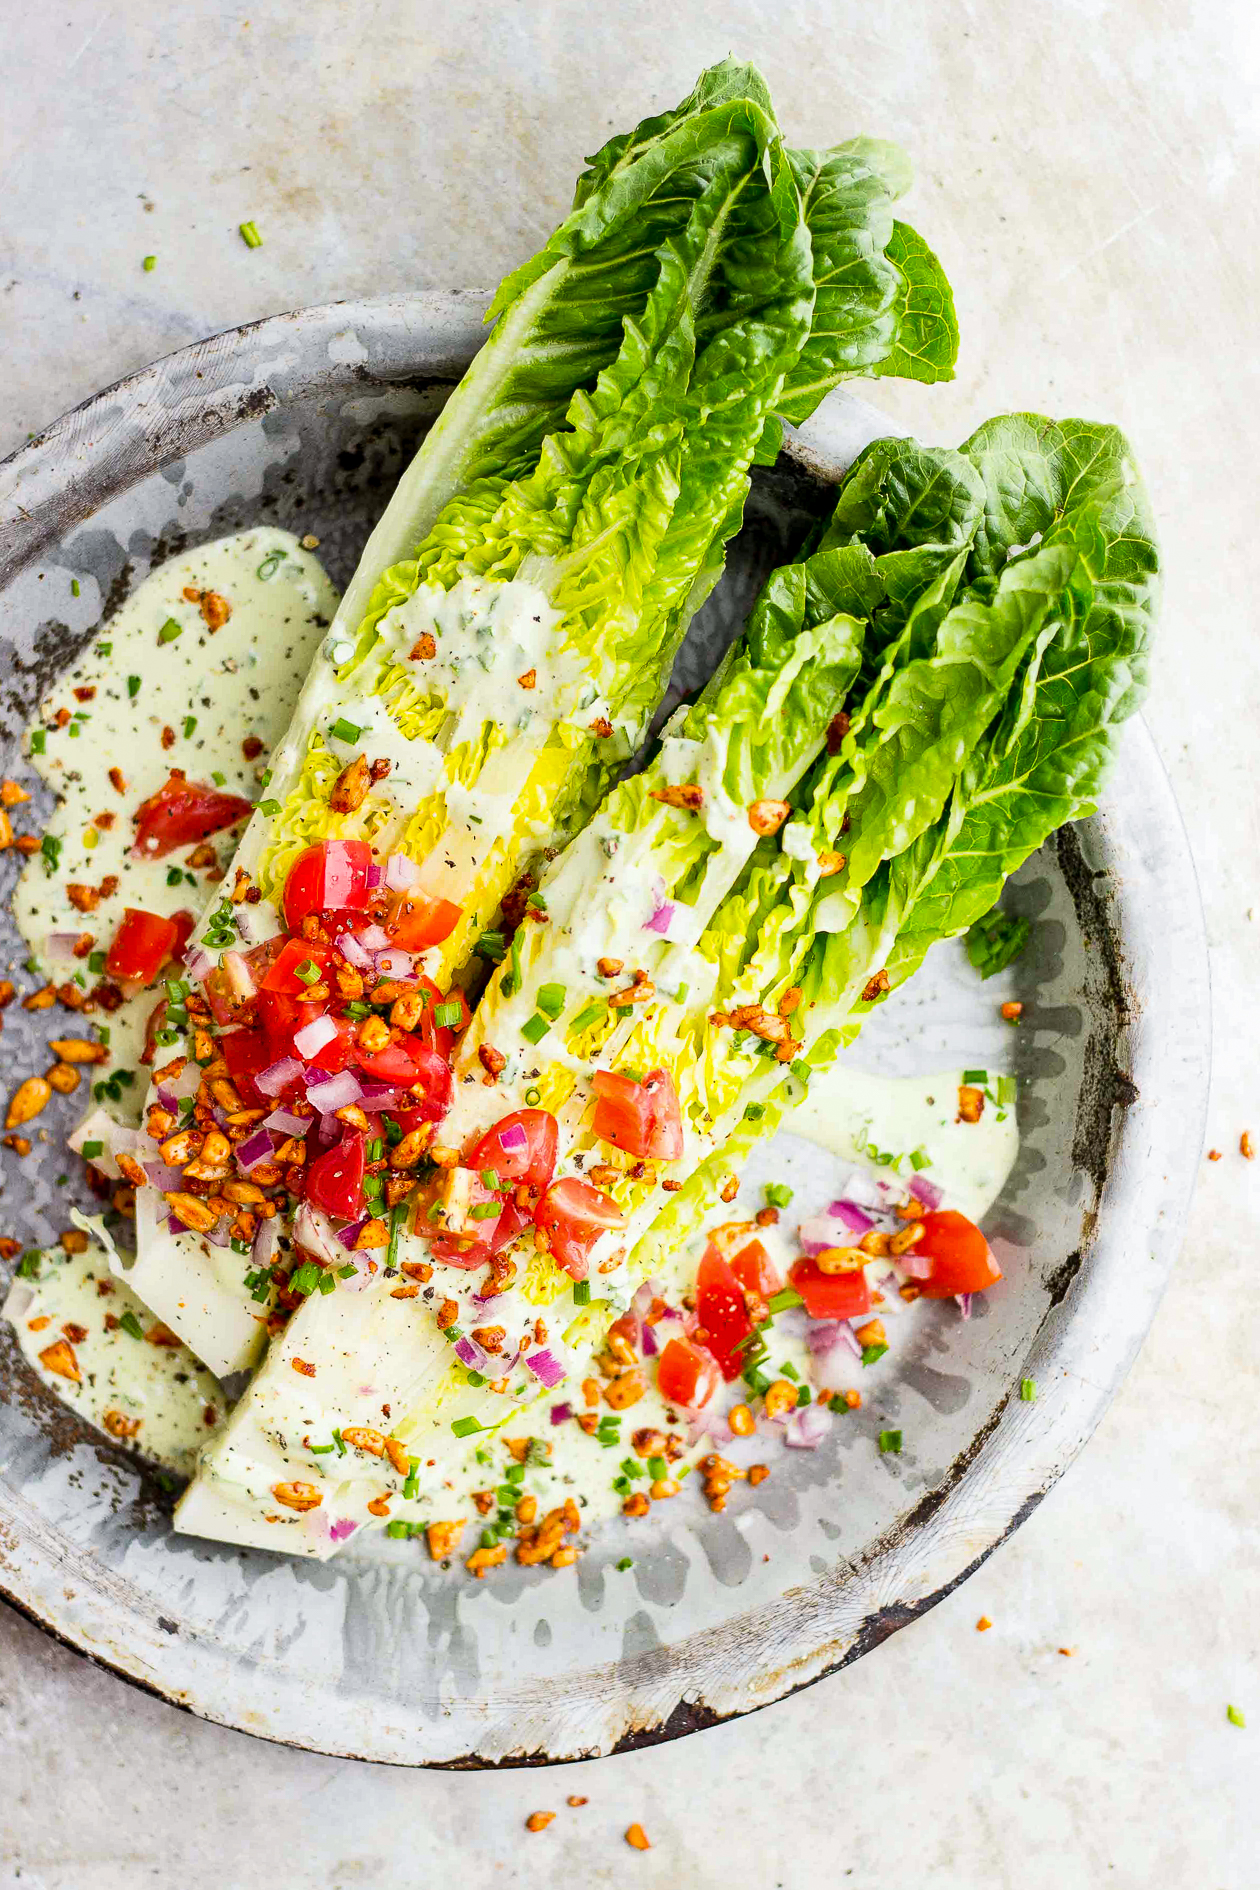 Romaine Wedge Salad with Chive Dressing + Smoky Sunflower Bits